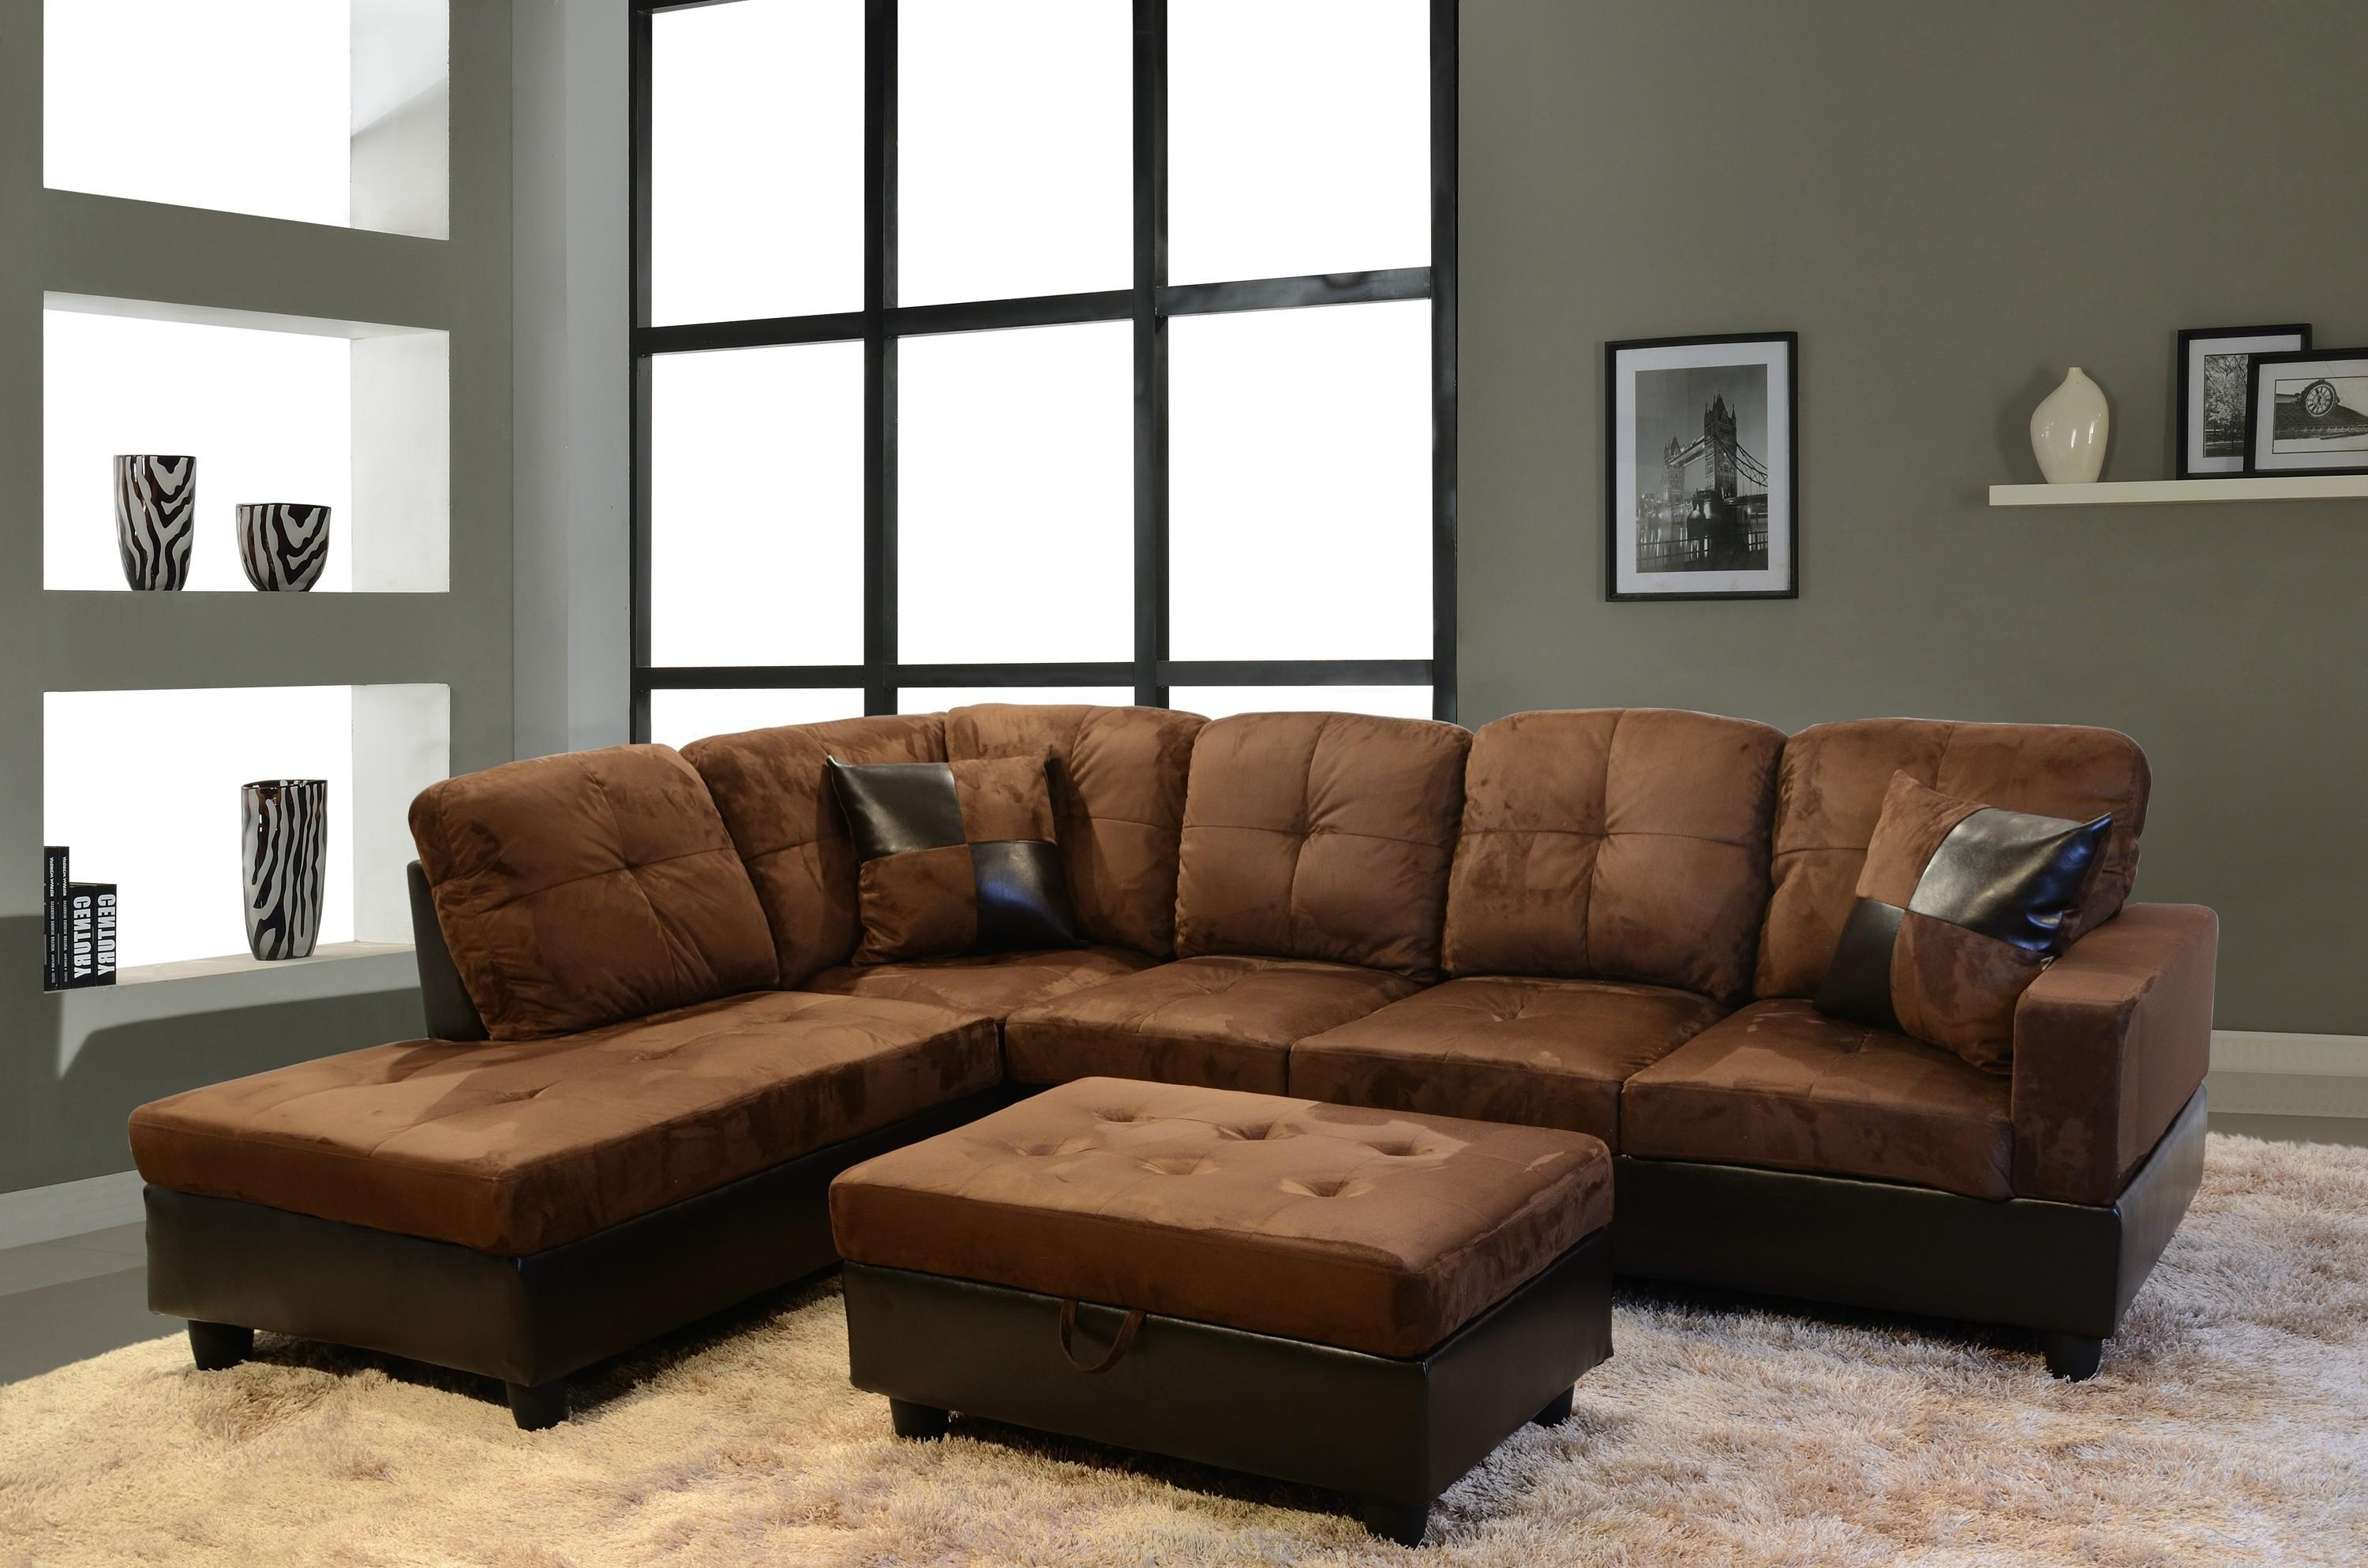 Furniture: Fantastic Sectional Couches With Recliners For Your Throughout Microfiber Suede Sectional (Image 5 of 20)